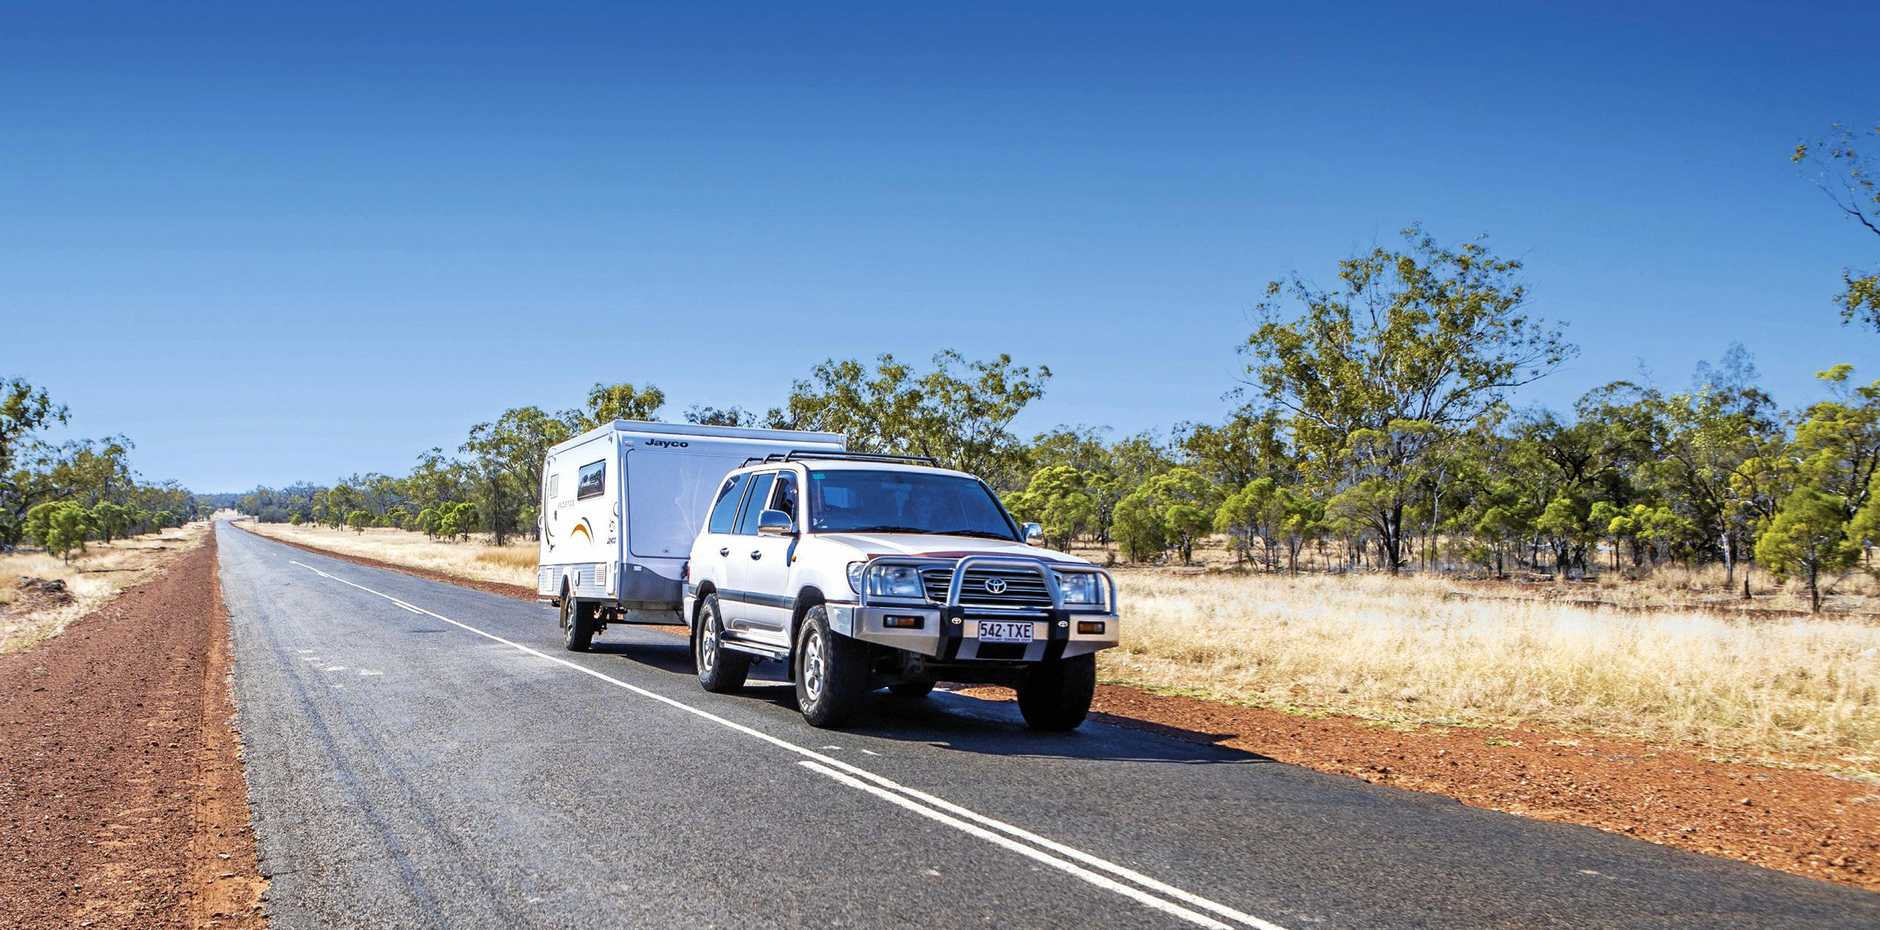 ROAD WORKS: A $7.28 million upgrade on the Carnarvon Highway will start this month.